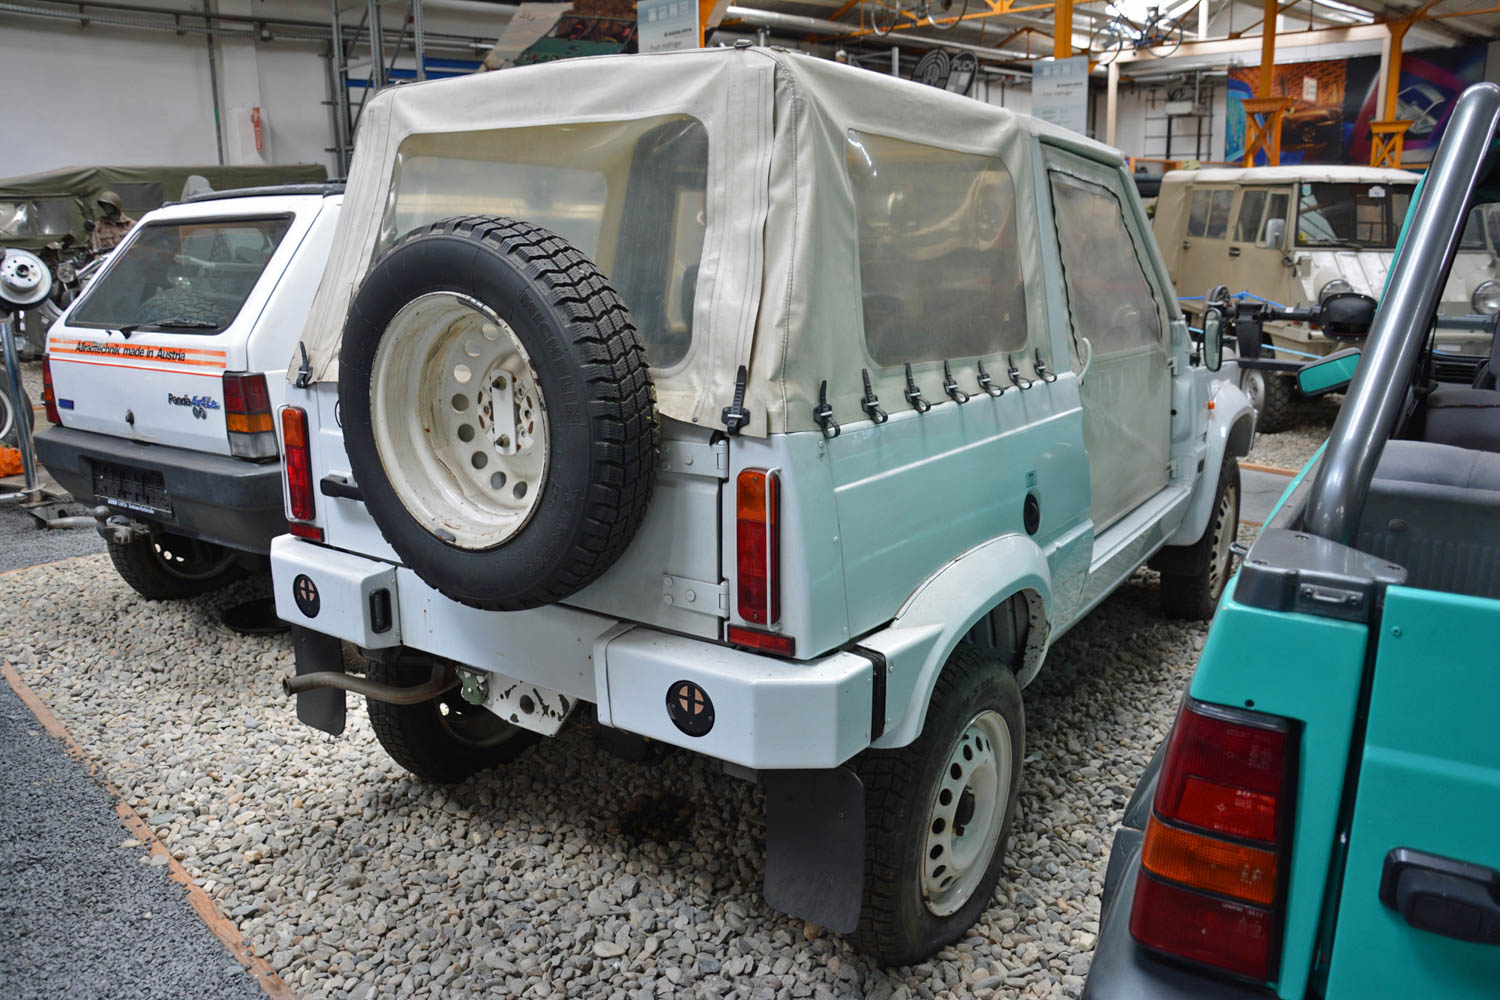 puch-museum-4x4-army-prototype